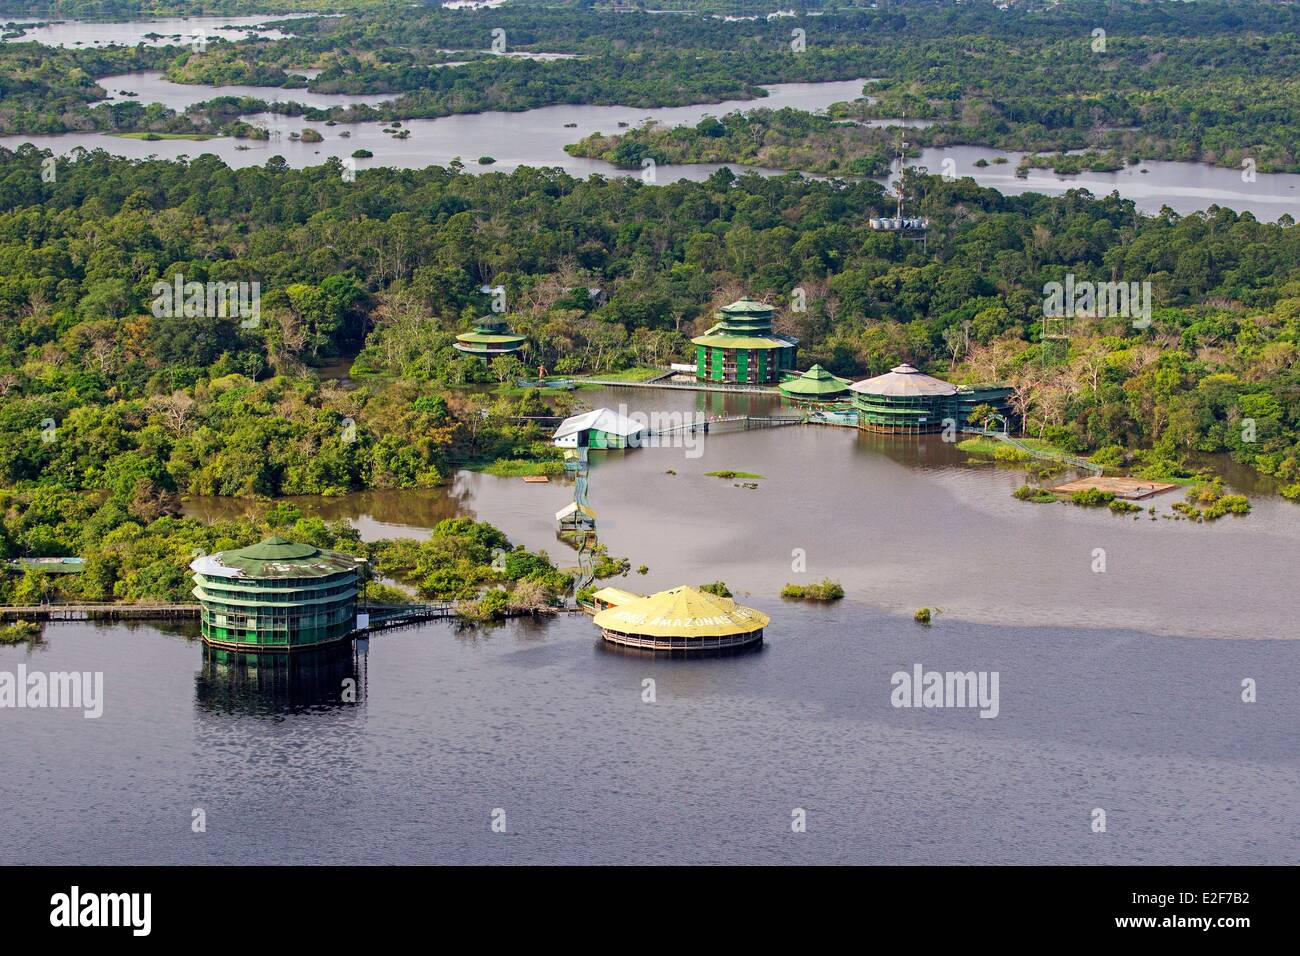 Brazil, Amazonas State, Rio Negro, Ariau Amazon towers and lodge, the largest treetop hotel in the world - Stock Image